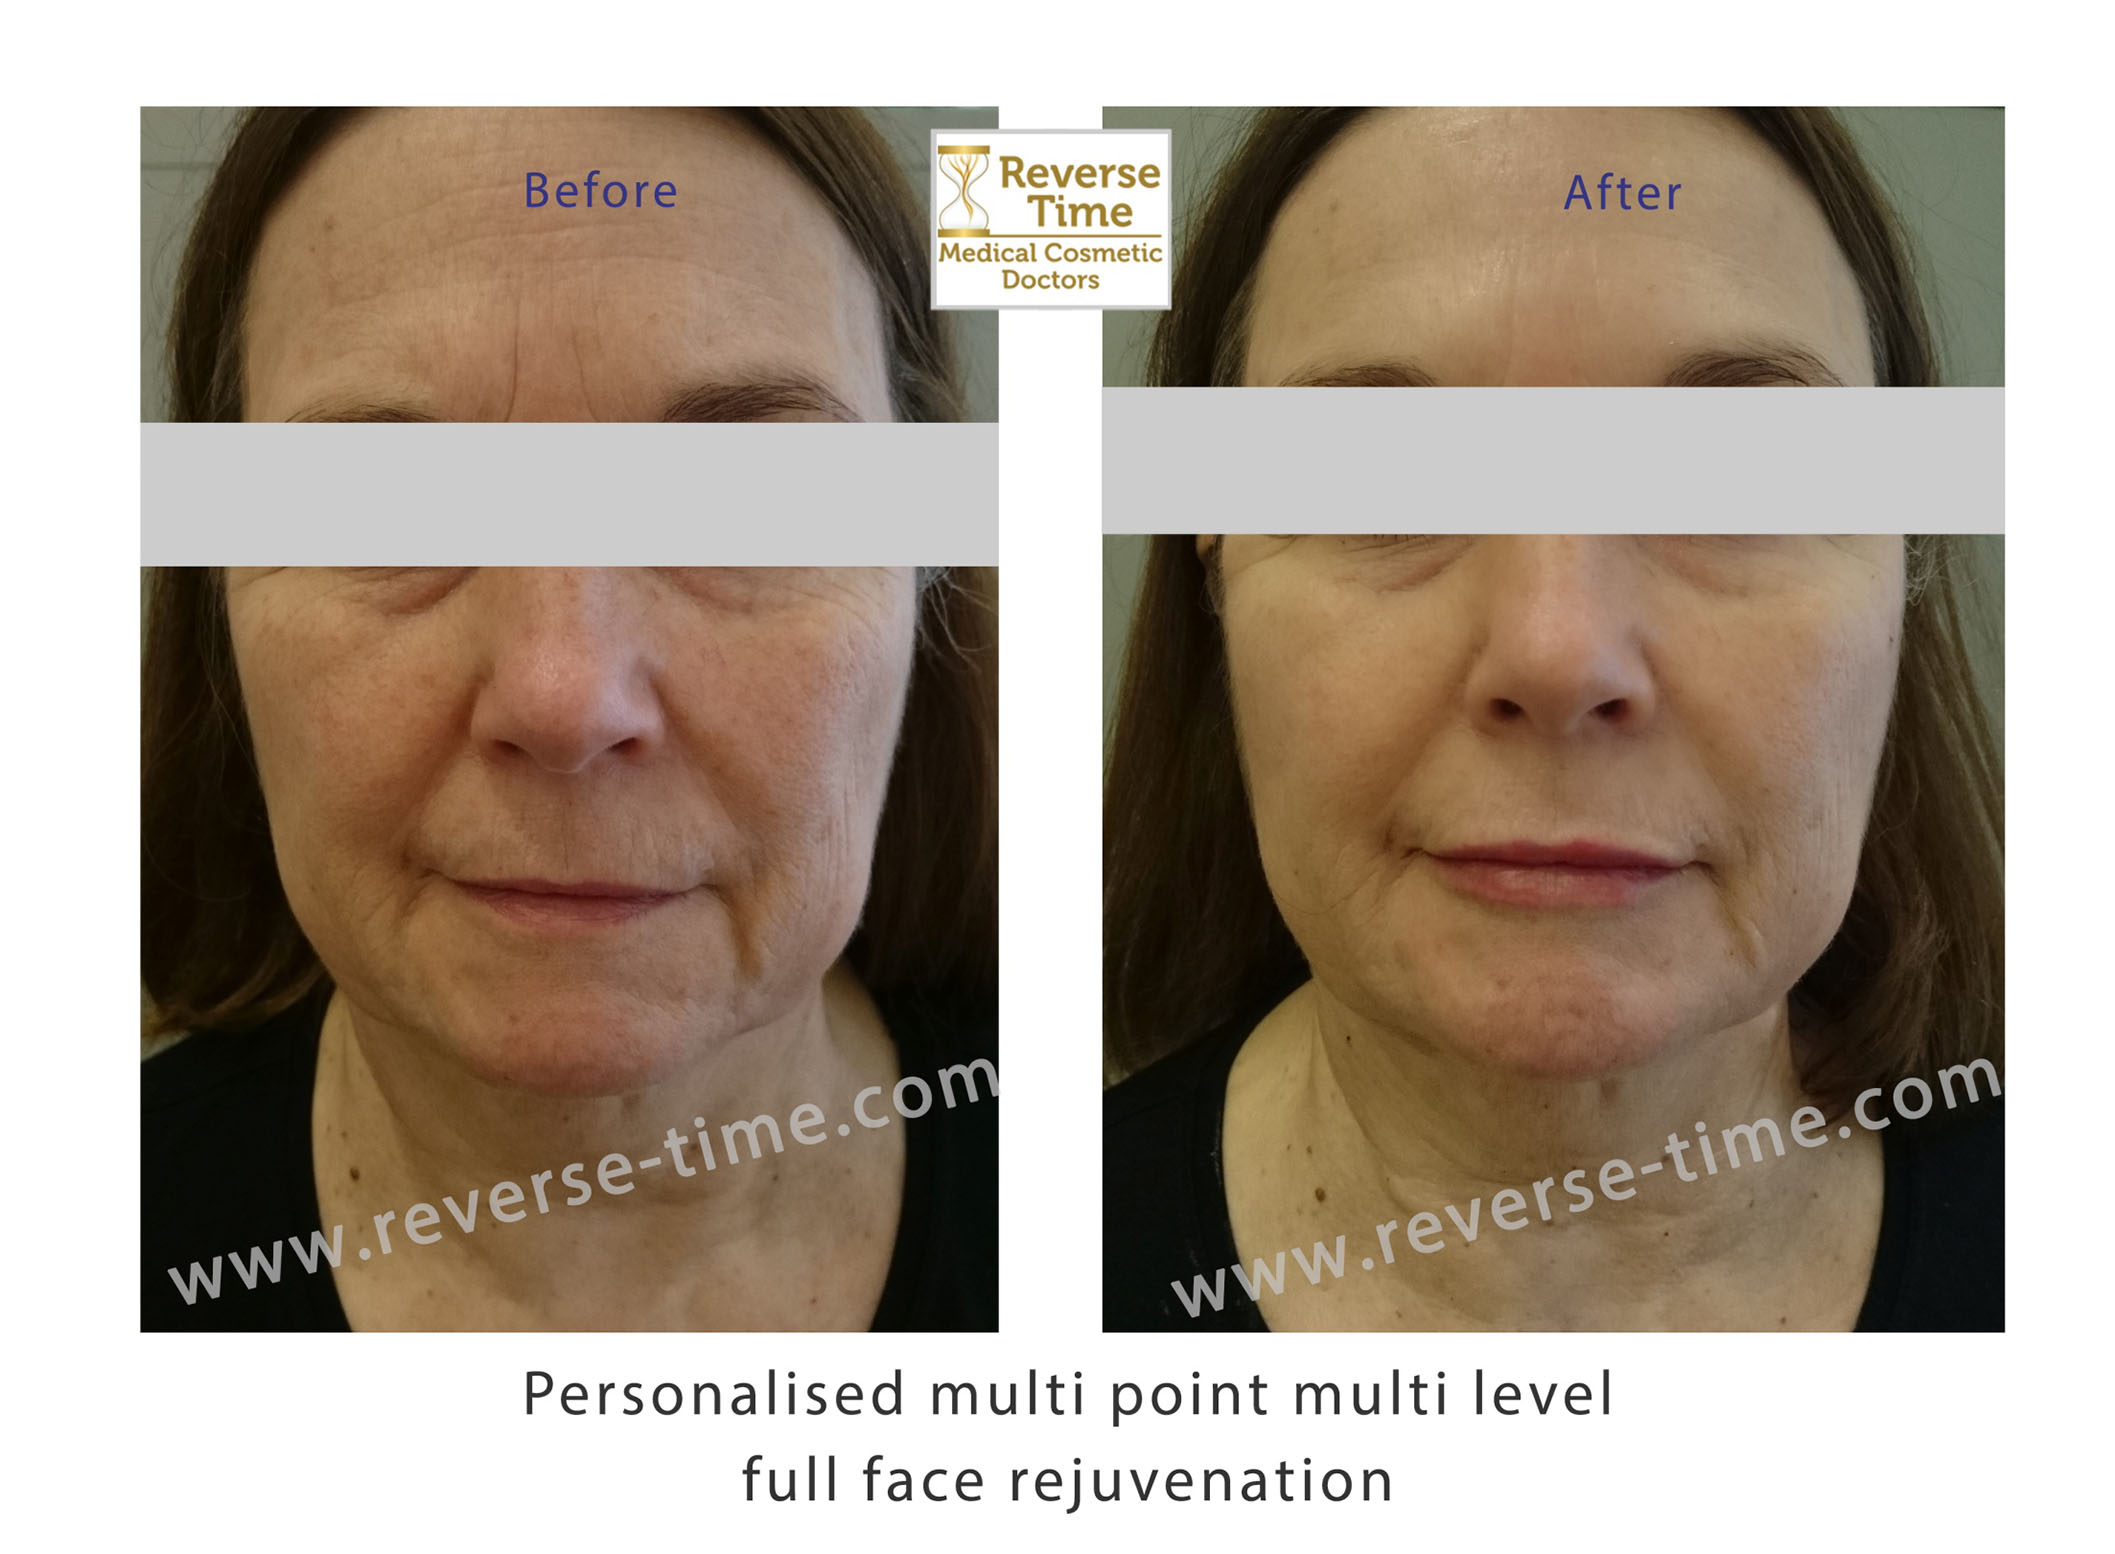 Multipoint Facial harmonization